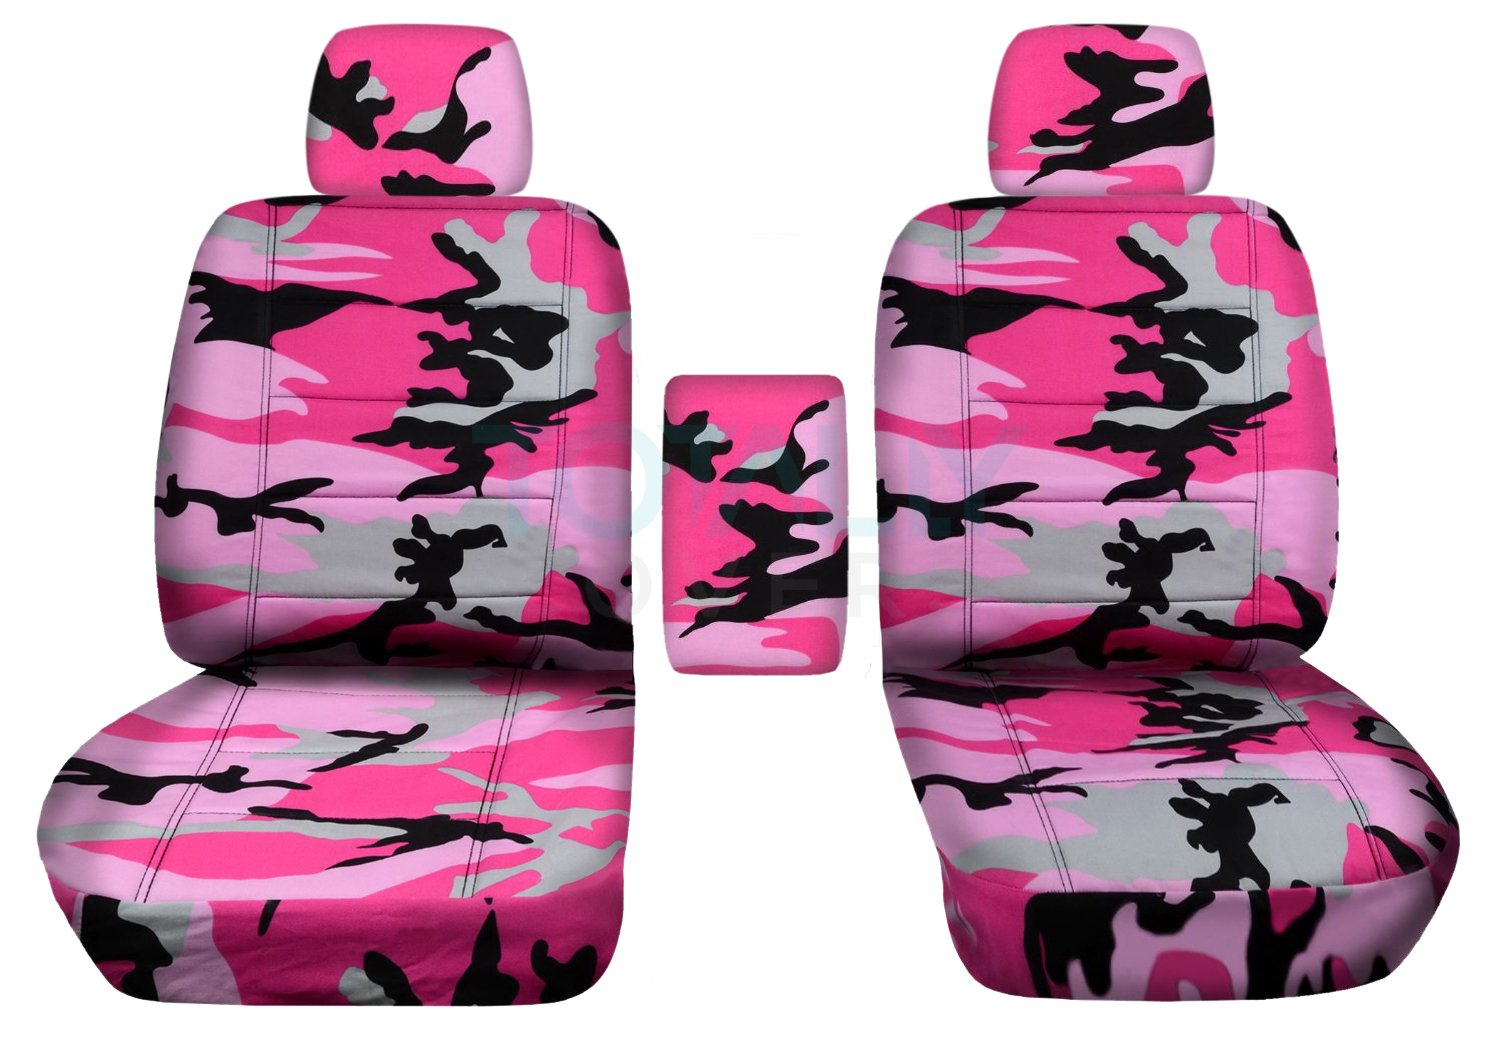 2010 2011 2012 2013 F-Series F150 Front Totally Covers Fits 2009-2014 Ford F-150 Camo Truck Bucket Seat Covers with Center Armrest 16 Prints Wetland Camouflage